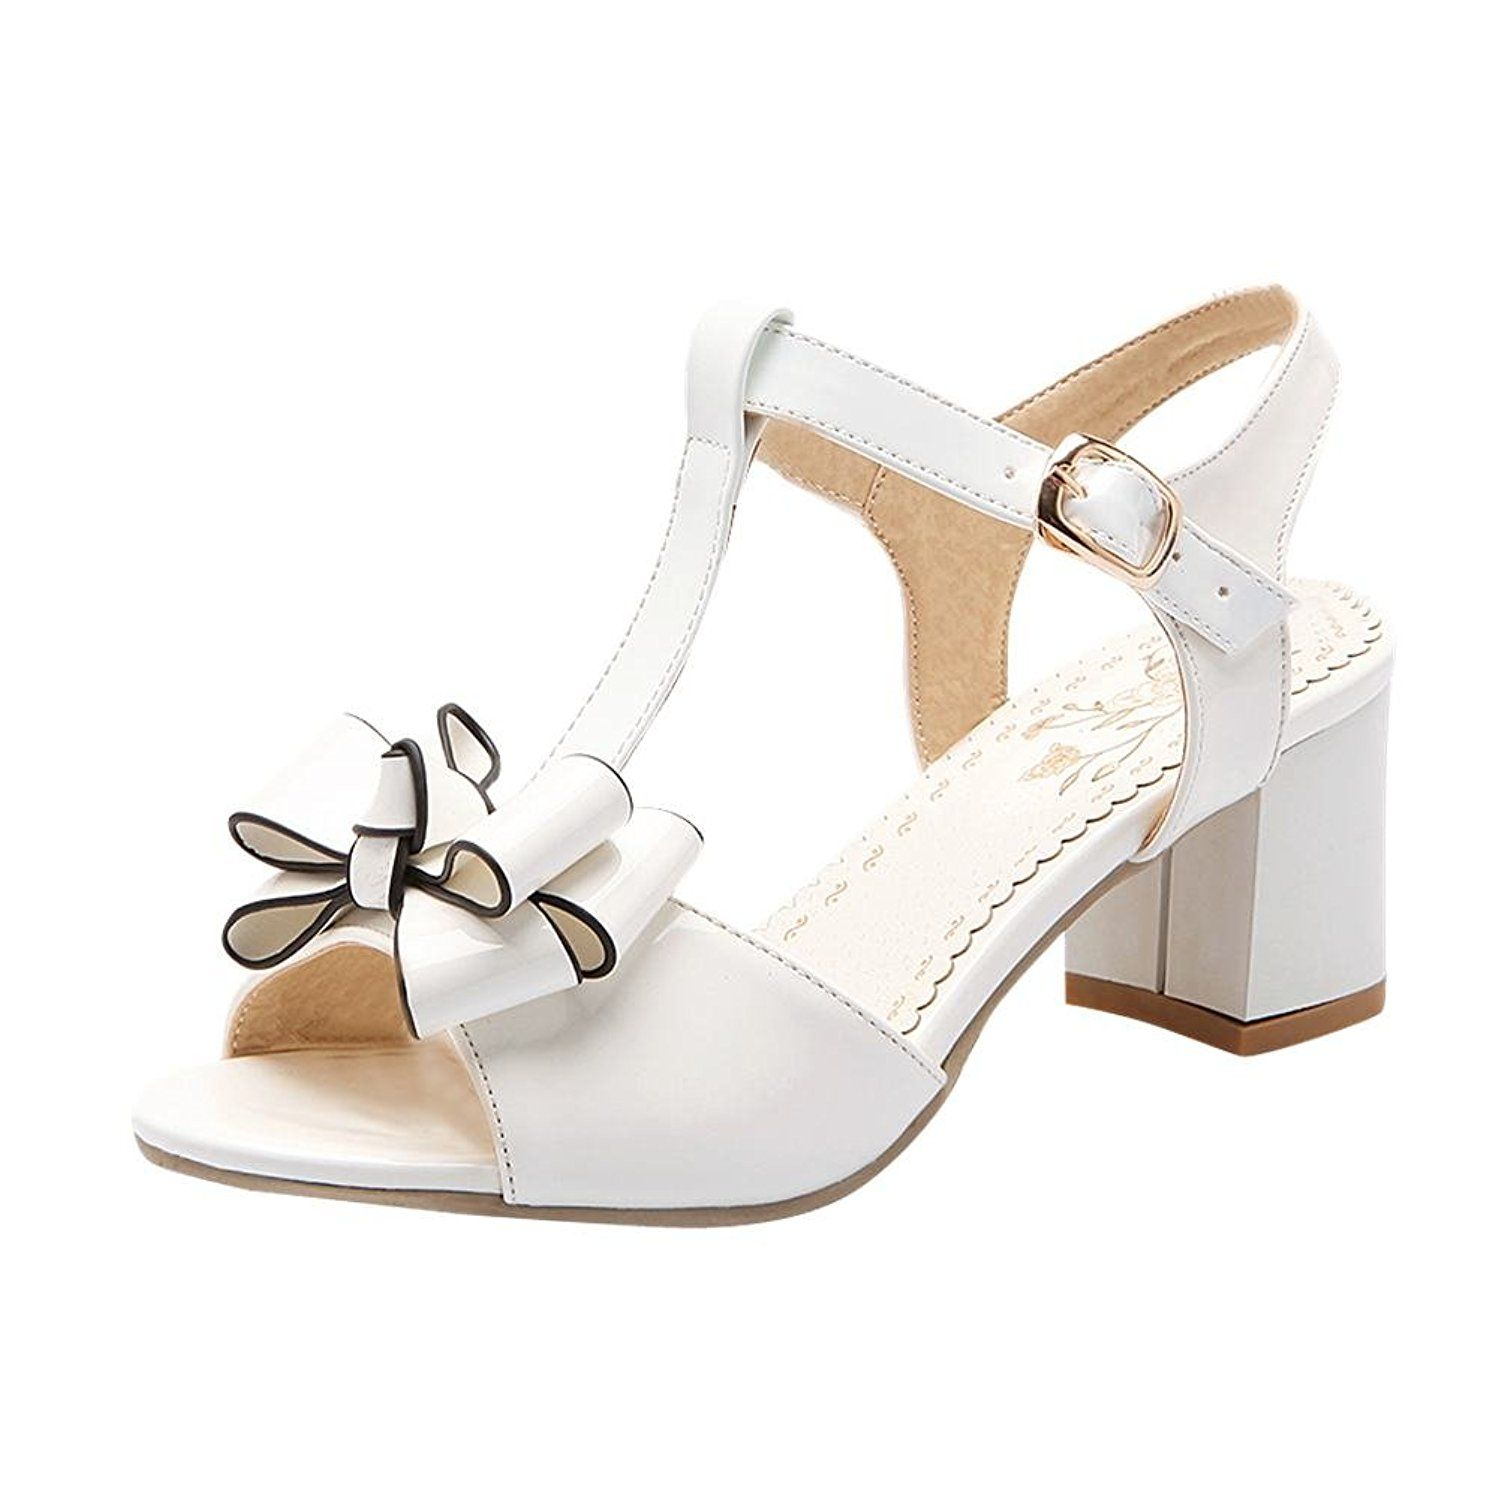 e6e8445f8d9 Latasa Womens Fashion Faux Patent-Leather Cute Bow Peep-Toe Mid Chunky Heel  T-Strap Casual Dress Sandals   Click image for more details. (Amazon  affiliate ...